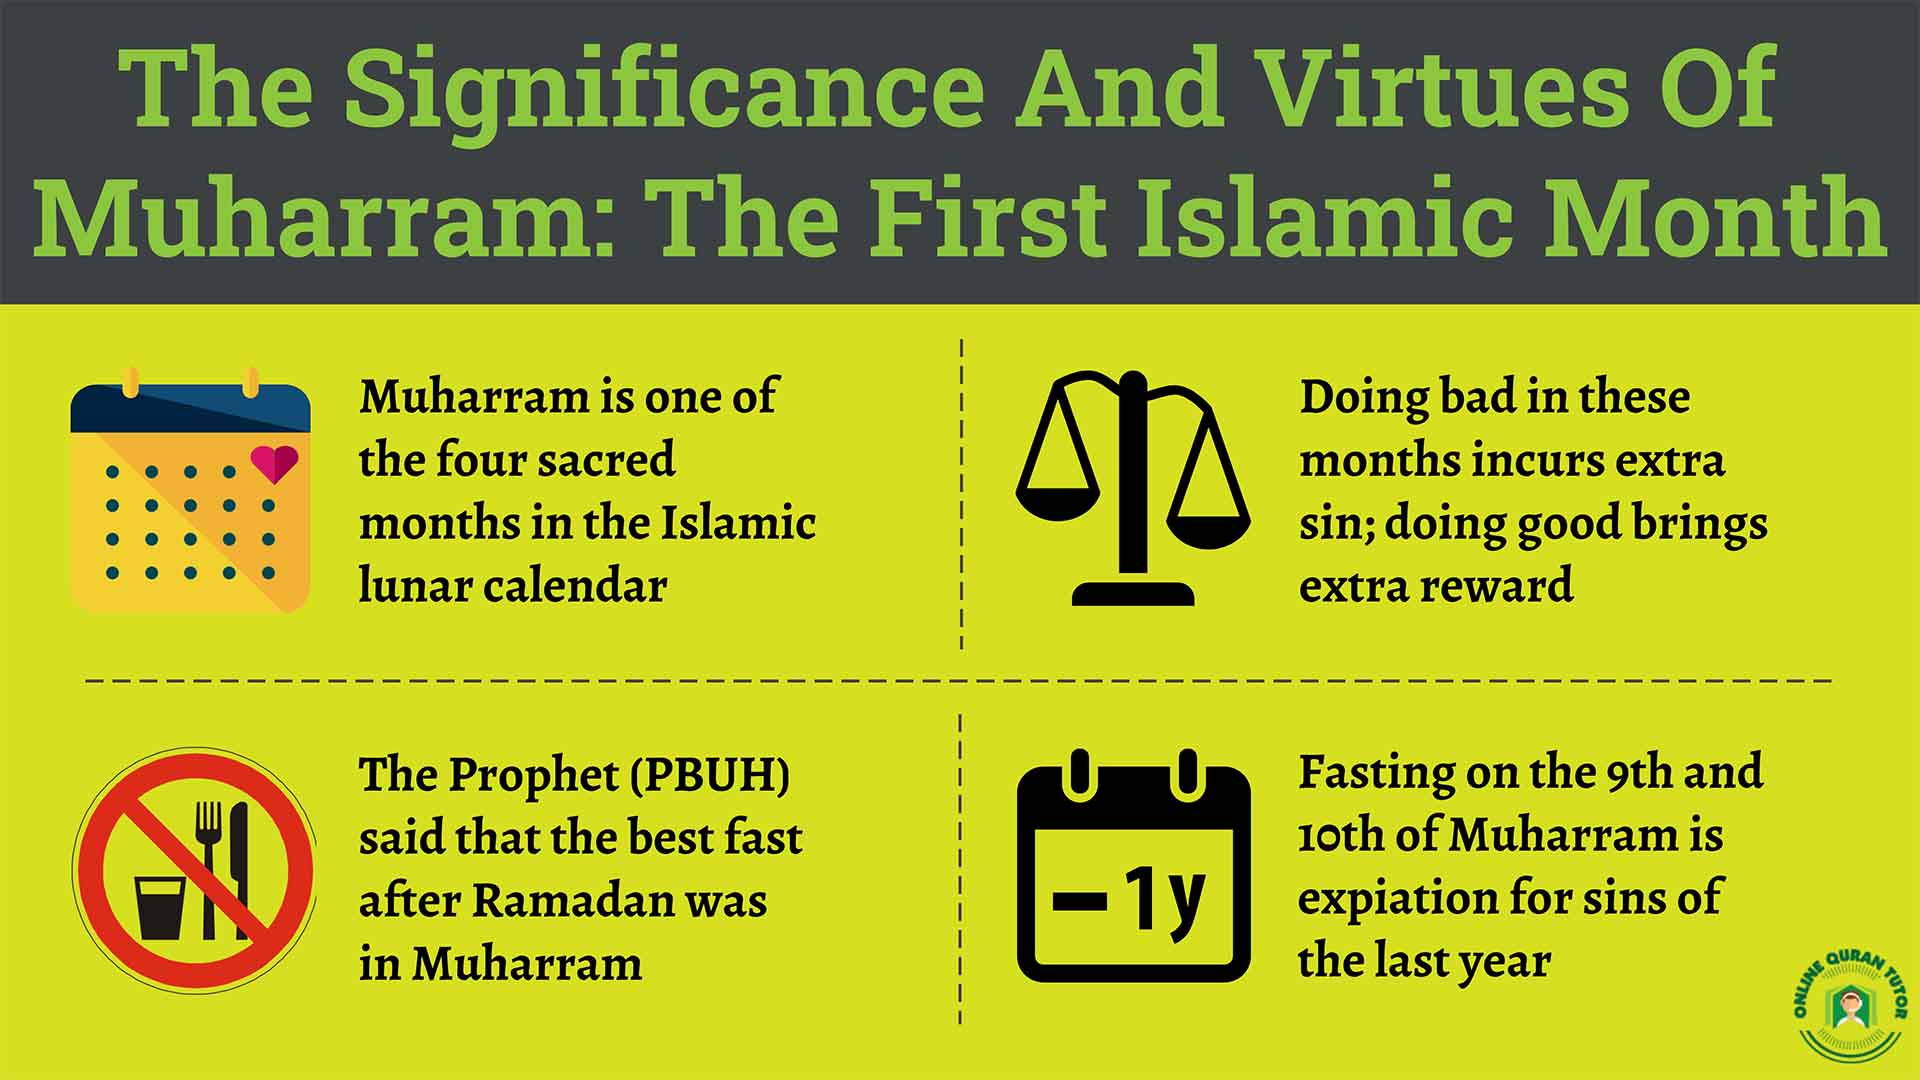 The Significance and Virtues of Muharram: The First Islamic Month